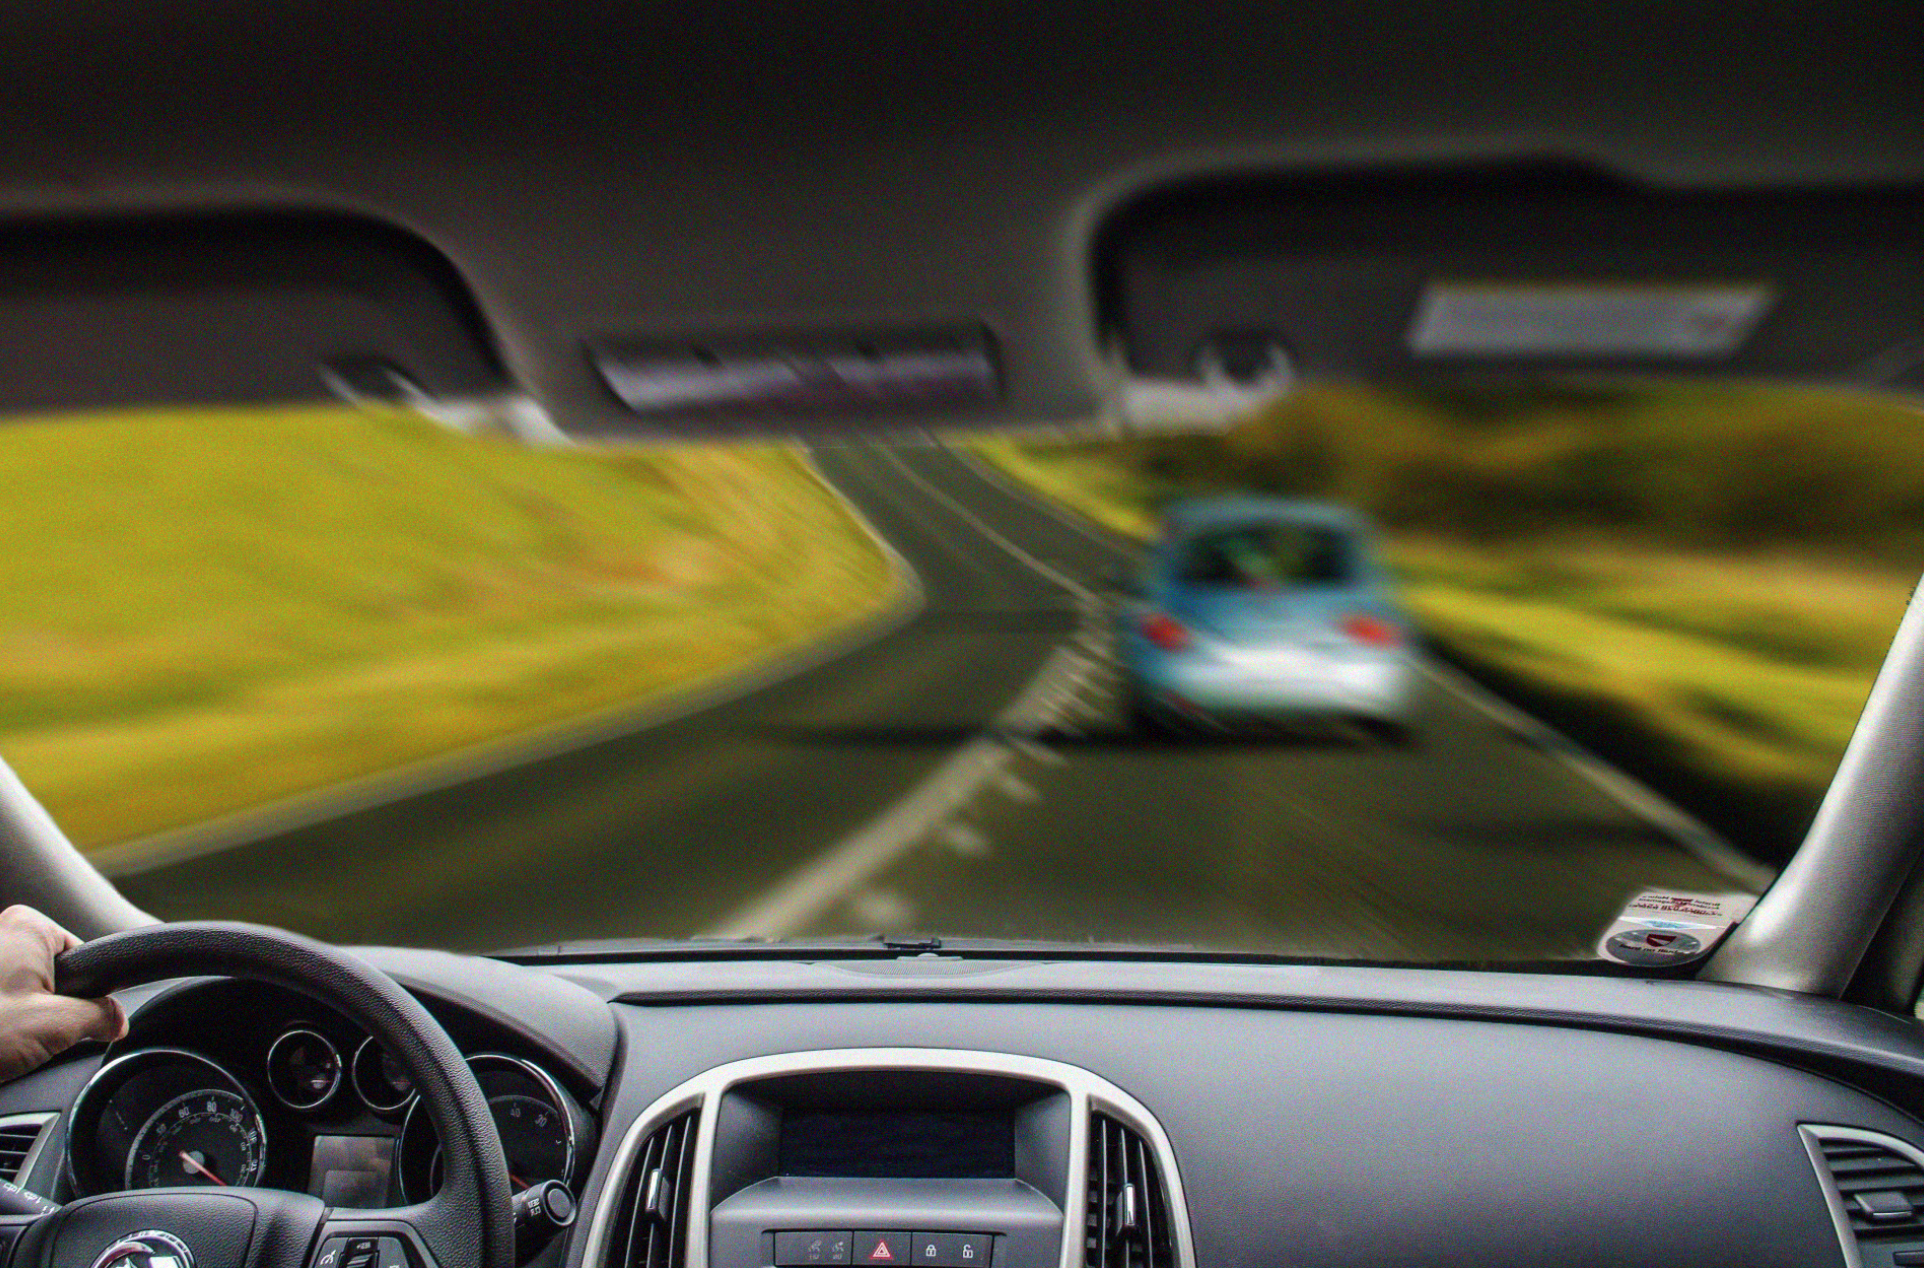 Man driving, in-focus view of dash with out-of-focus view of car ahead; image by JoeNomi 1961, via Wikimedia Commons, CC0.